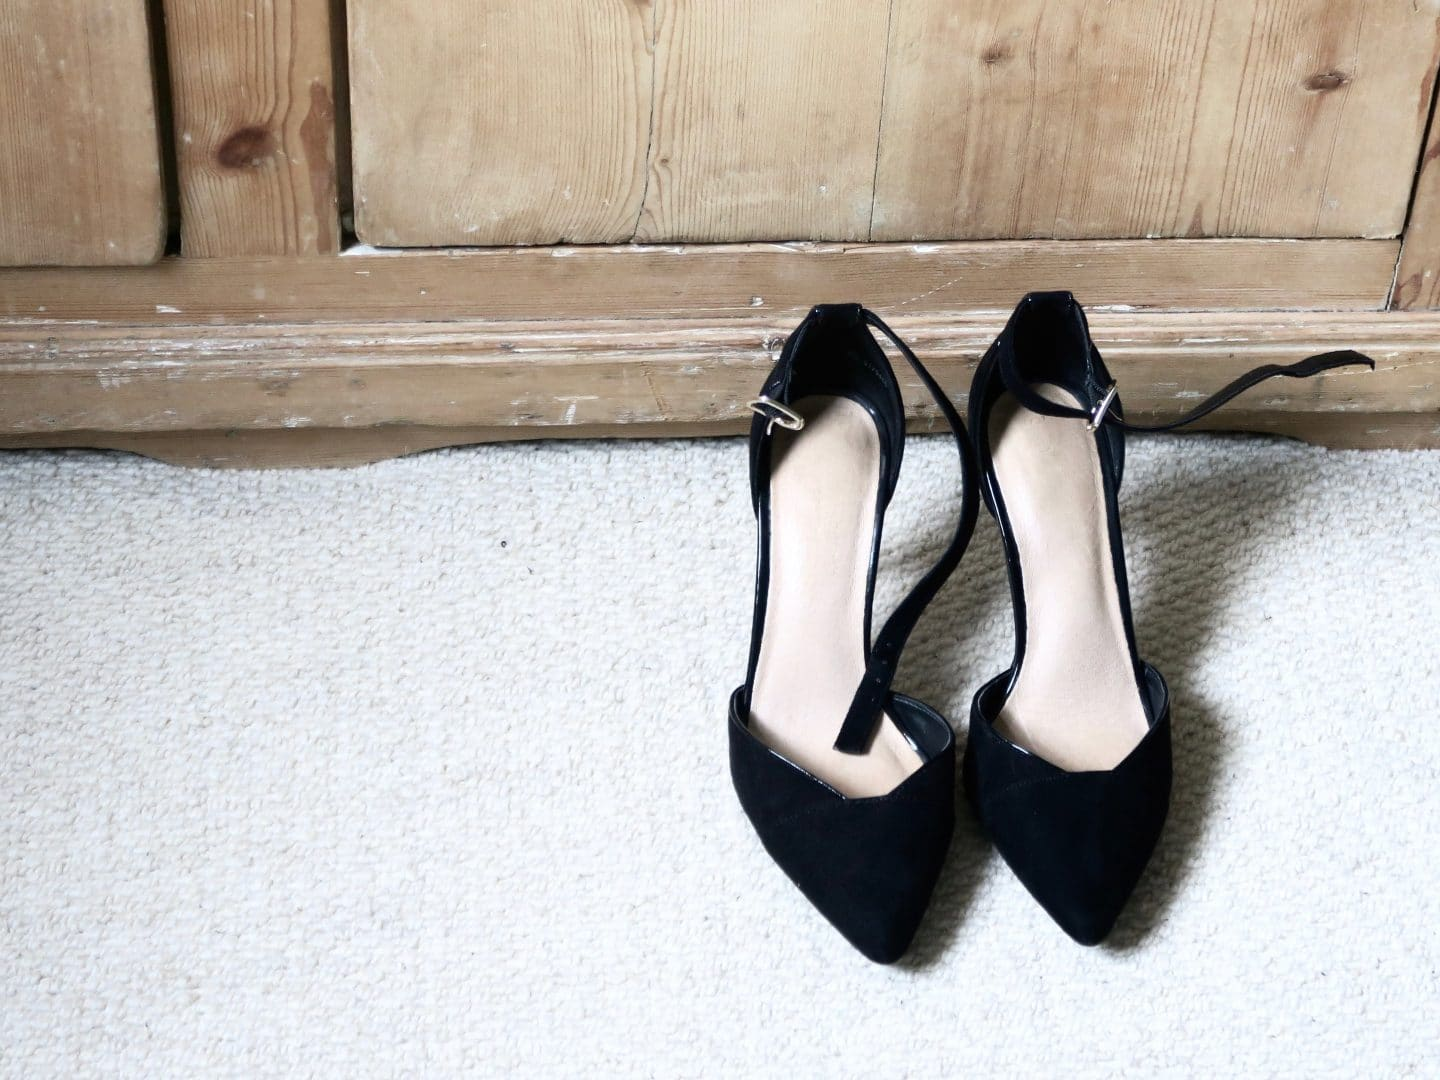 Ethical Womens Shoes Guide | Curiously Conscious